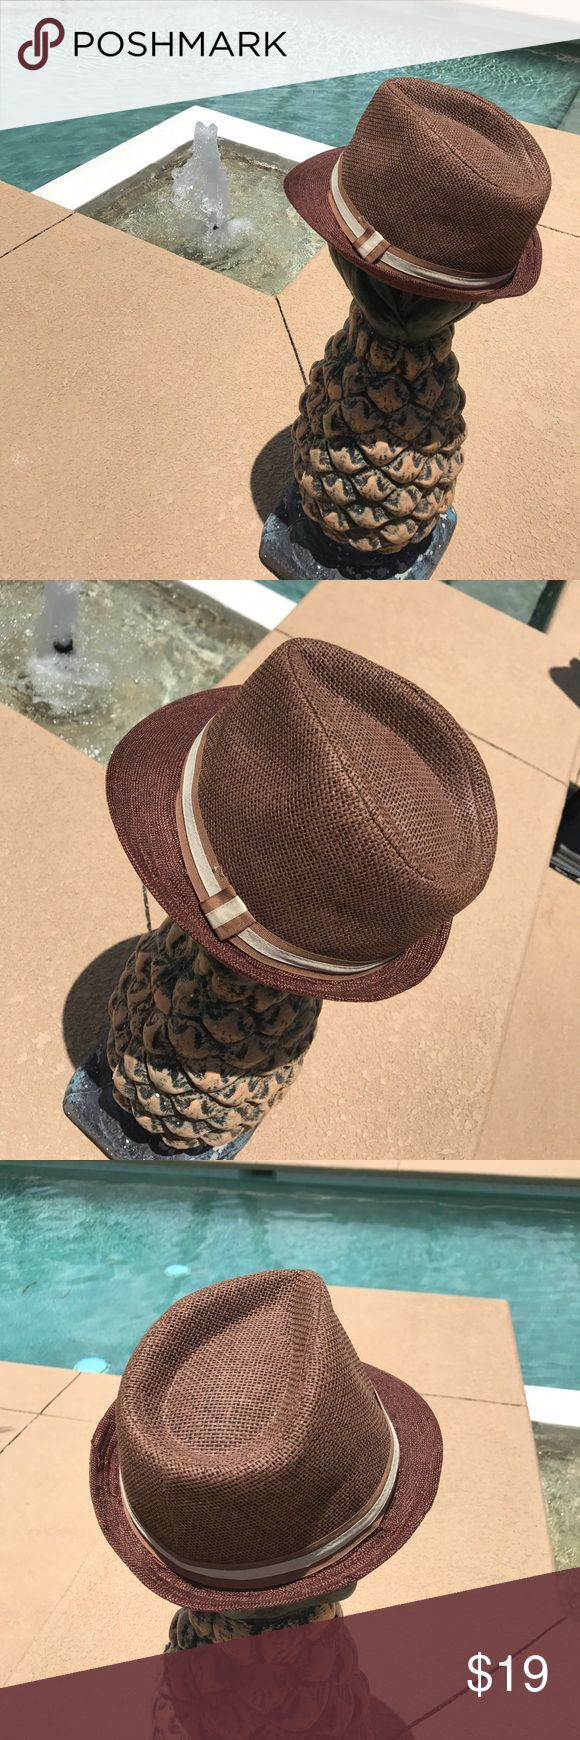 Trendy straw fedora hat 👒👒👒 Trendy straw fedora hat 👒👒👒 Accessories Hats